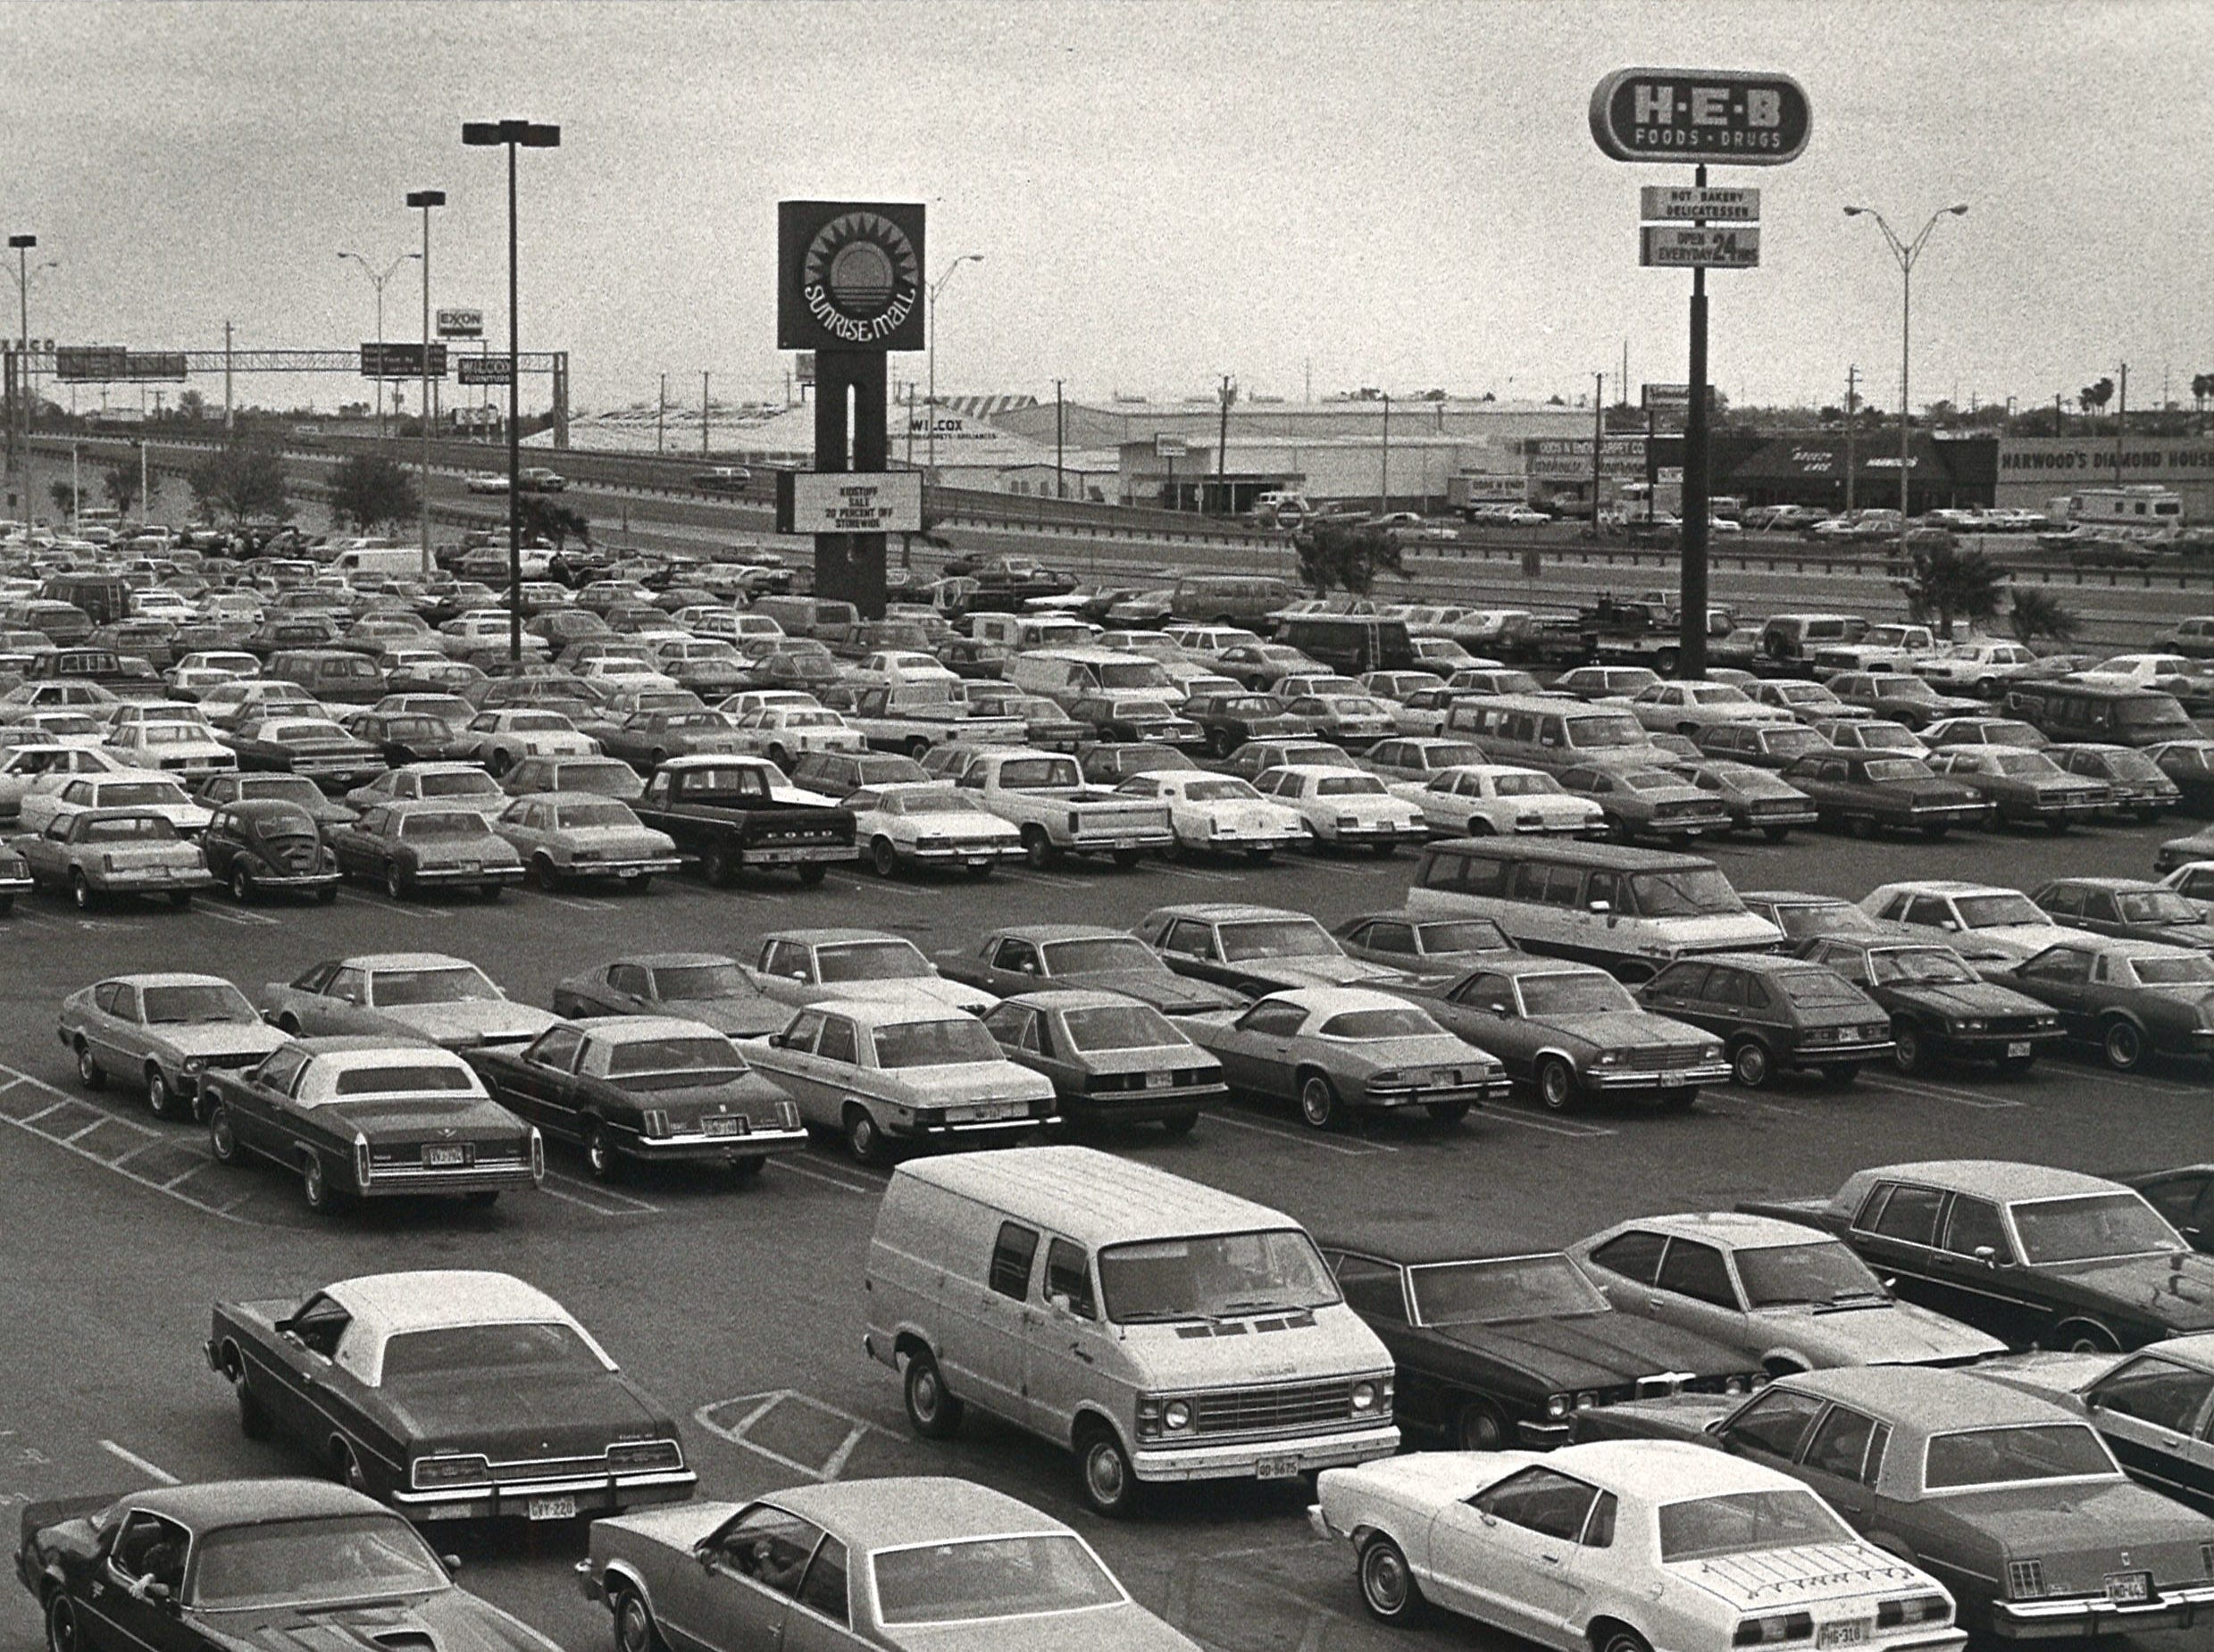 The parking lot of Sunrise Mall was jammed on Nov. 27, 1981 and cars parked illegally were being towed.